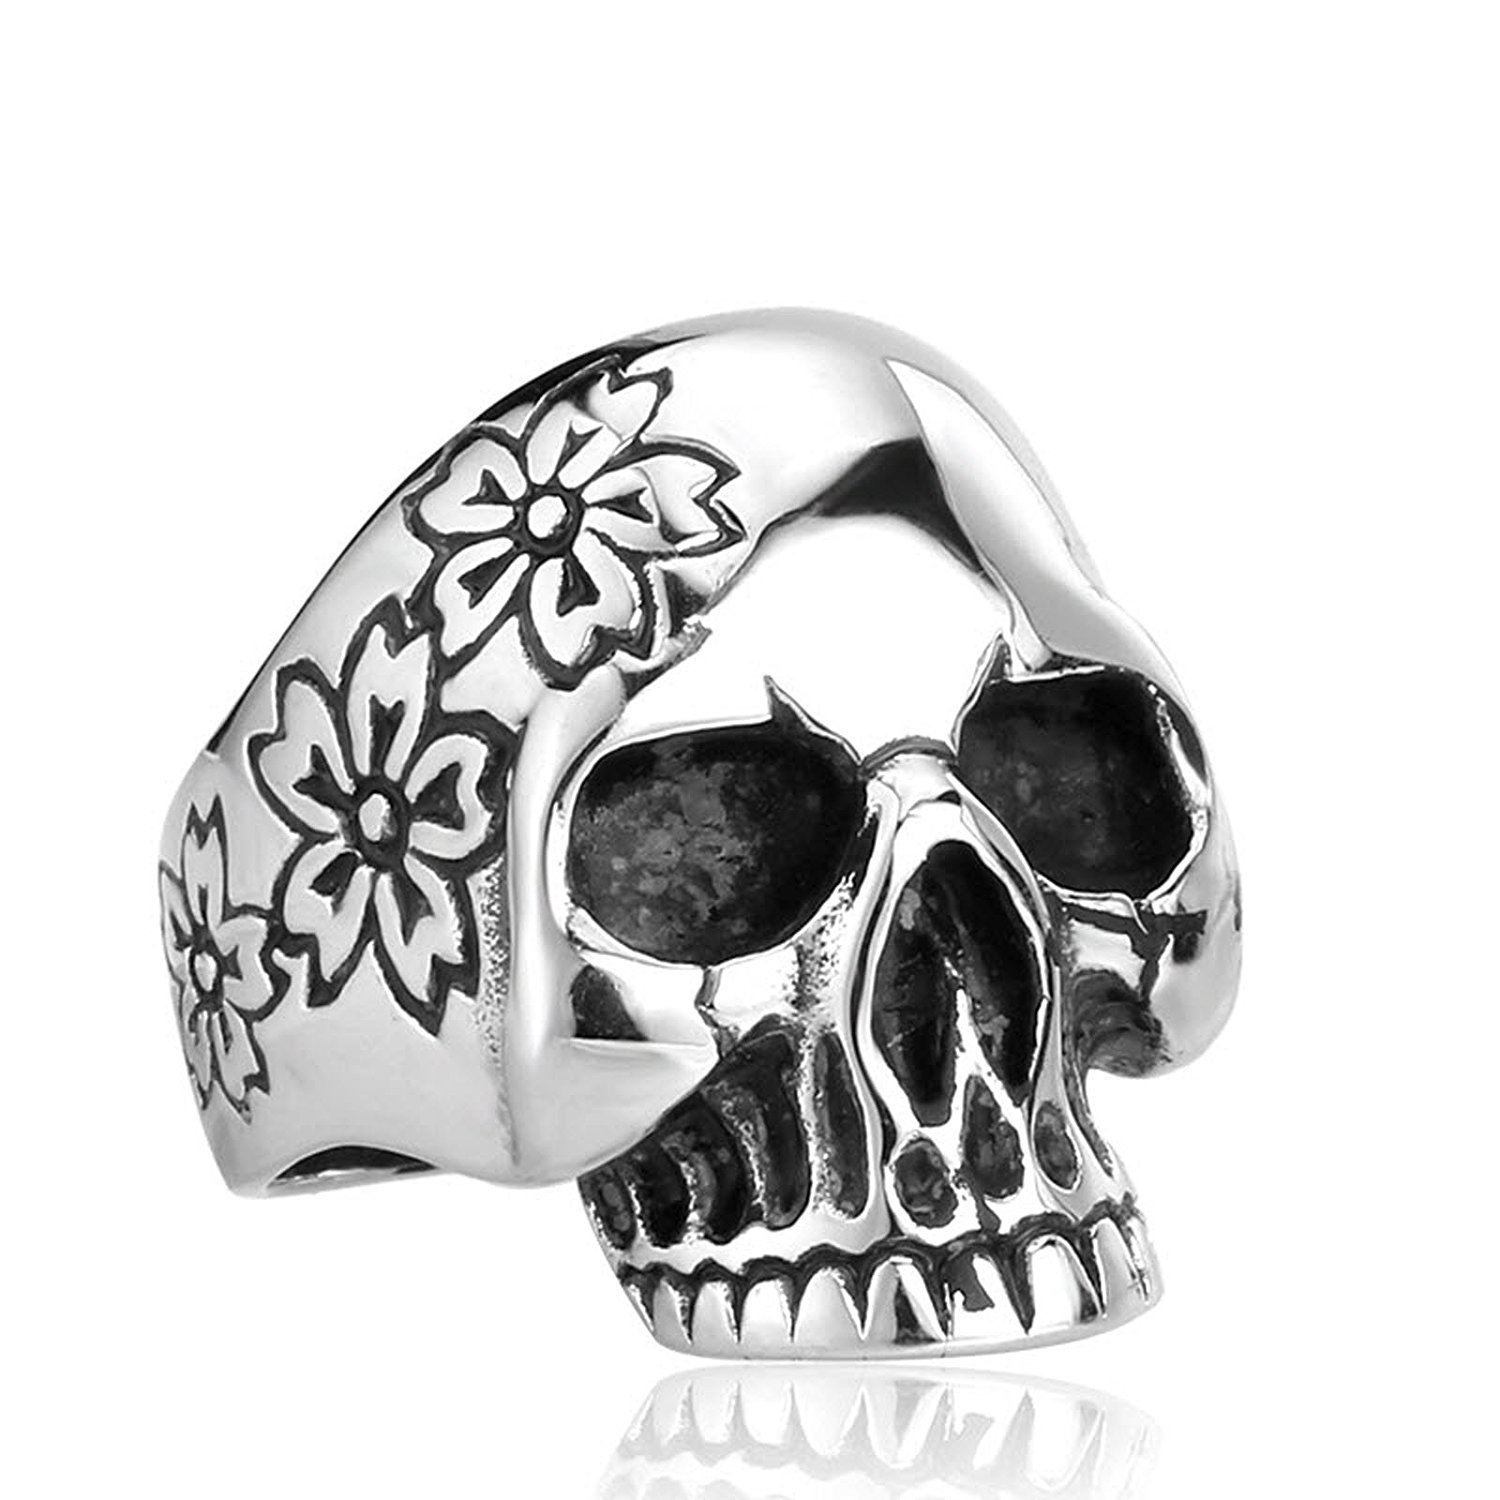 on halloween rings from gifts fatpig cool jewelry item mens gothic for punk skull vintage in men bone skeleton accessories